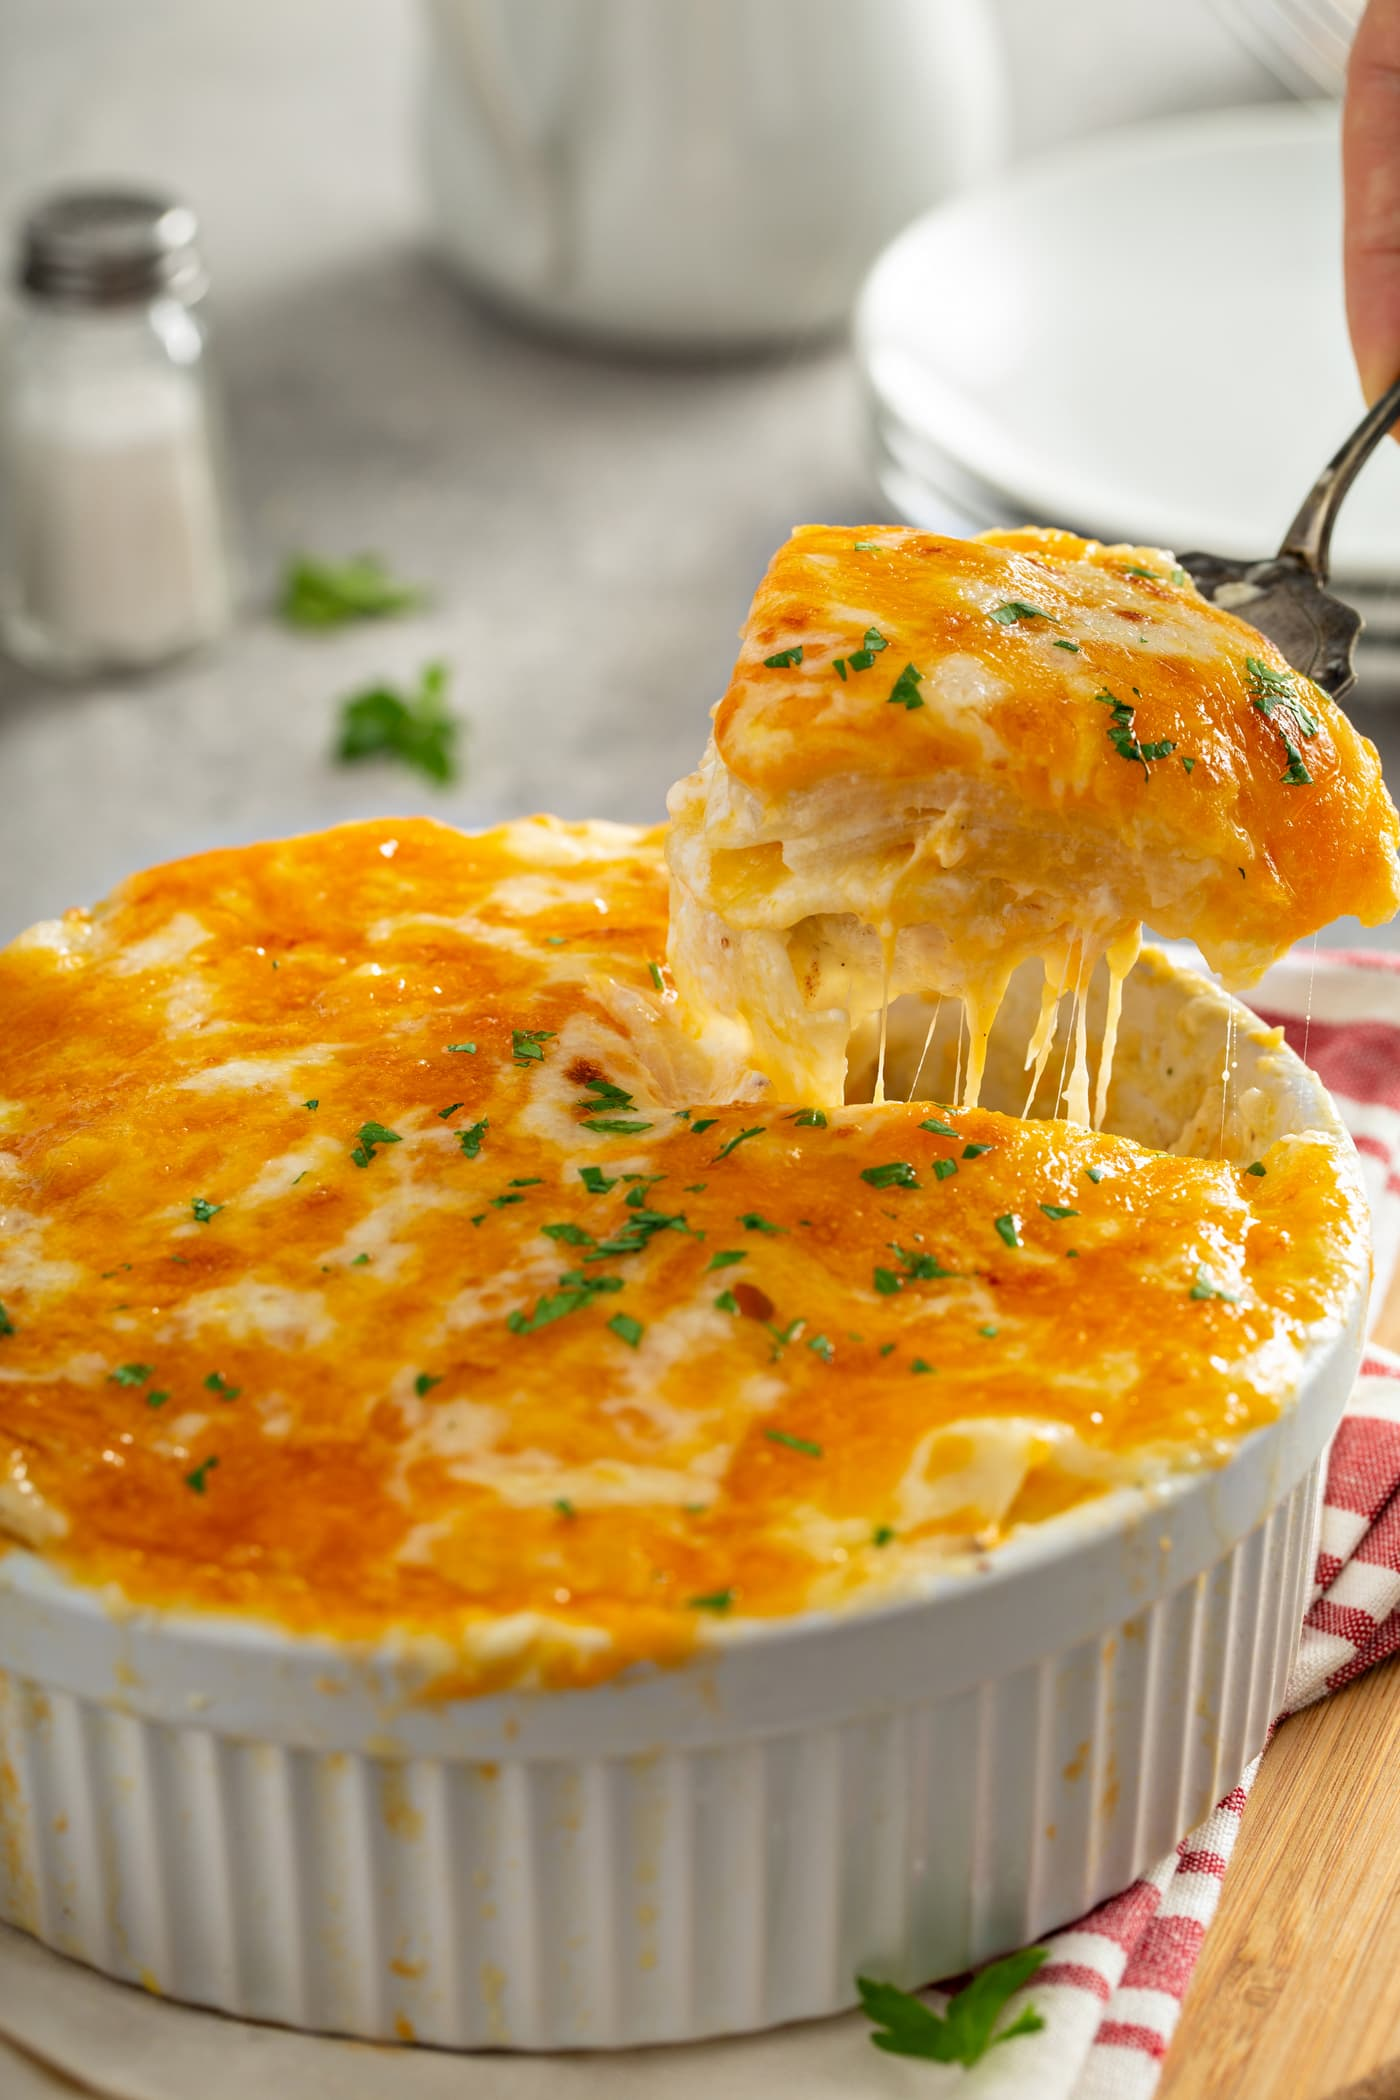 A serving of instant pot cheesy potatoes are being lifted from a white casserole dish with a serving spoon. the melted cheese is stringing out below the spoon. there is a stack of dinner plates in the background and a red and white kitchen towel beside the casserole dish.